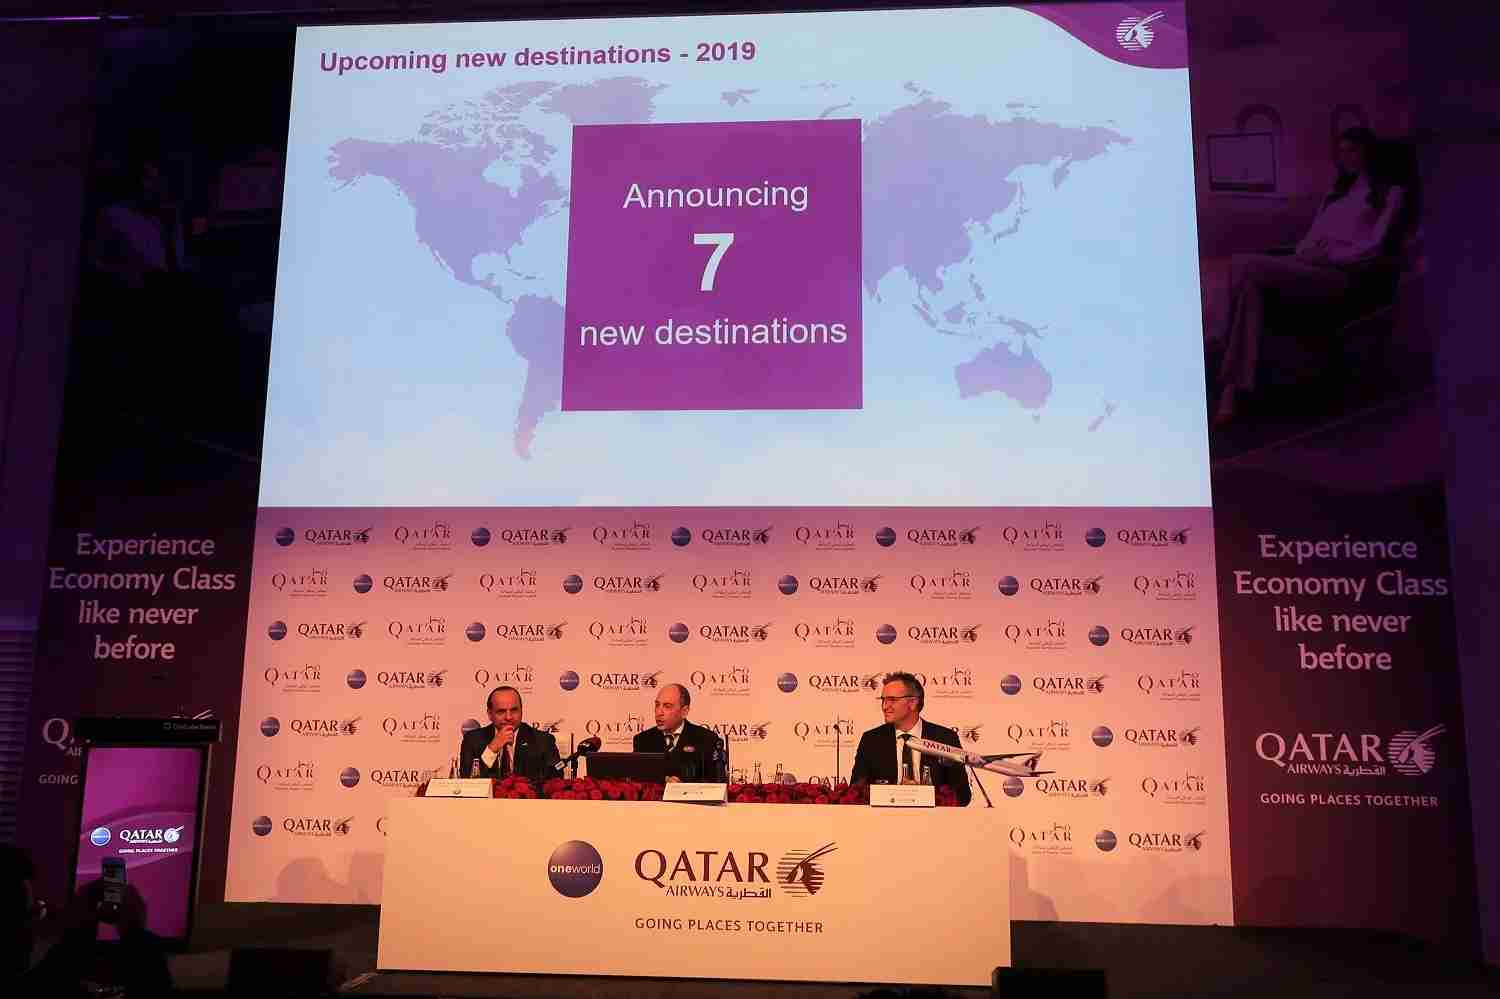 Qatar ITB Press Conference announcing new destinations in 2019 (Photo by JT Genter / The Points Guy)